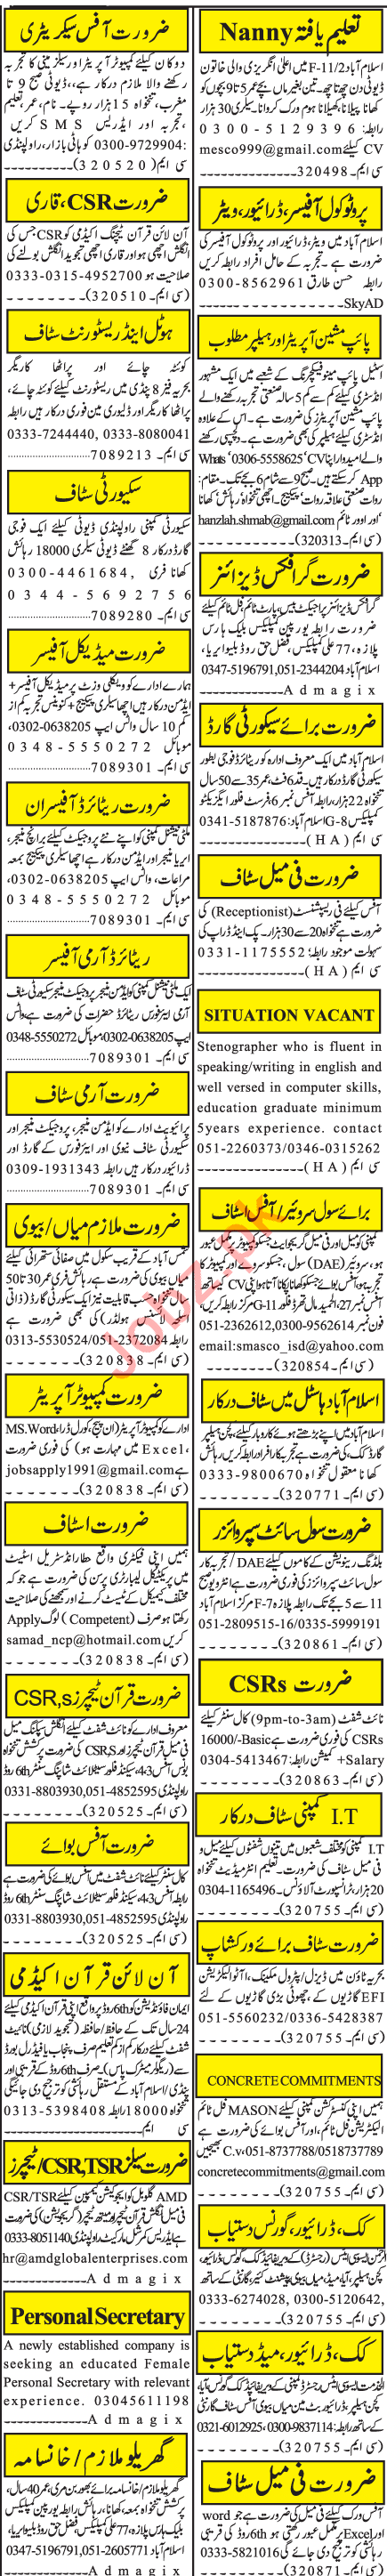 Jang Sunday Classified Ads 25 Oct 2020 for General Staff